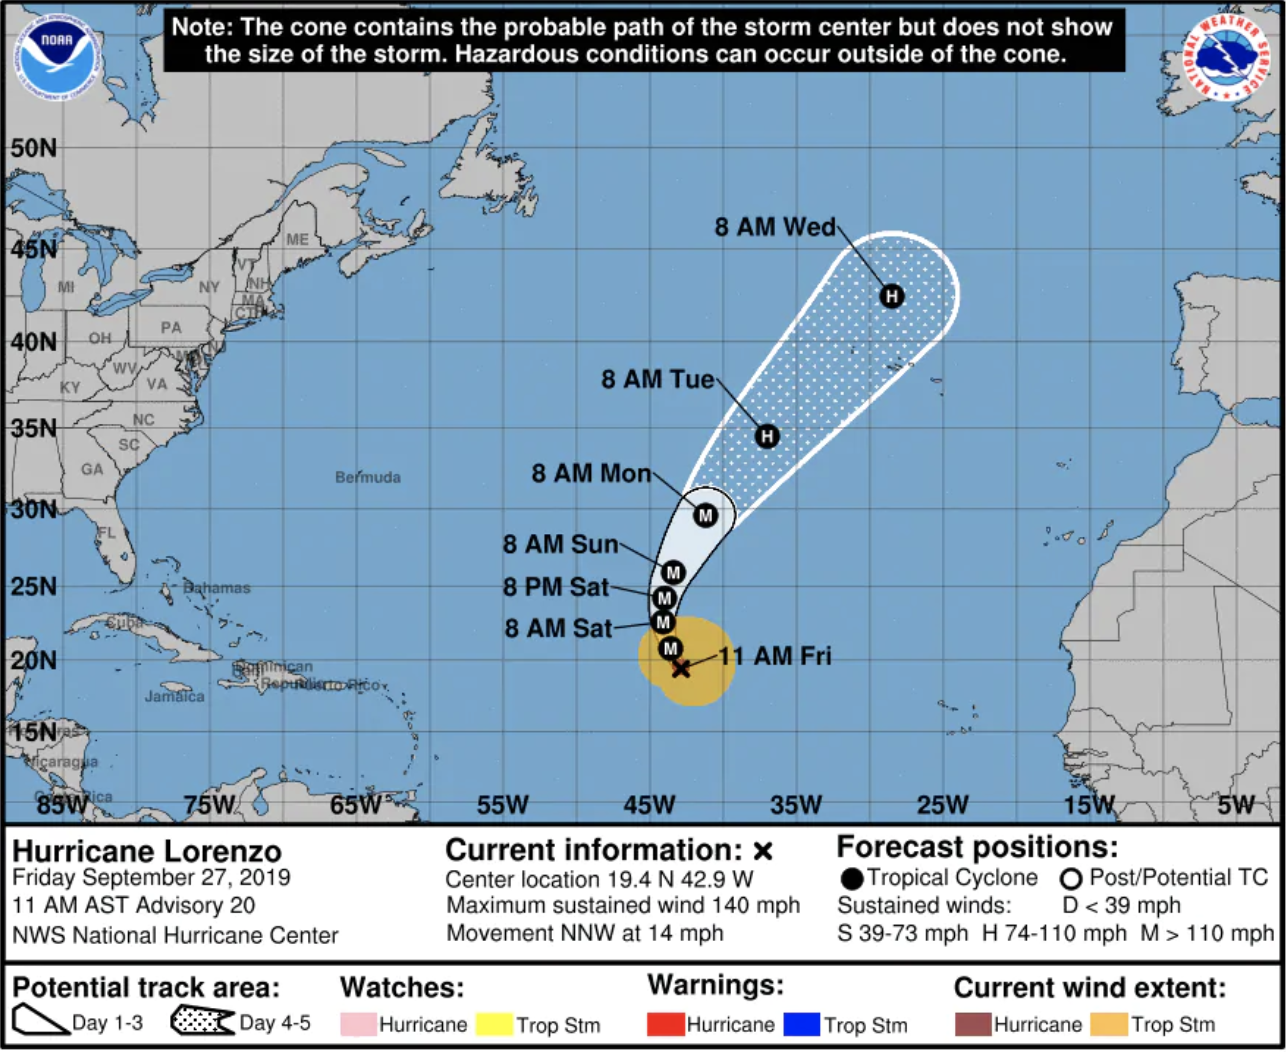 We're now directly in path of Hurricane Lorenzo according to forecasts